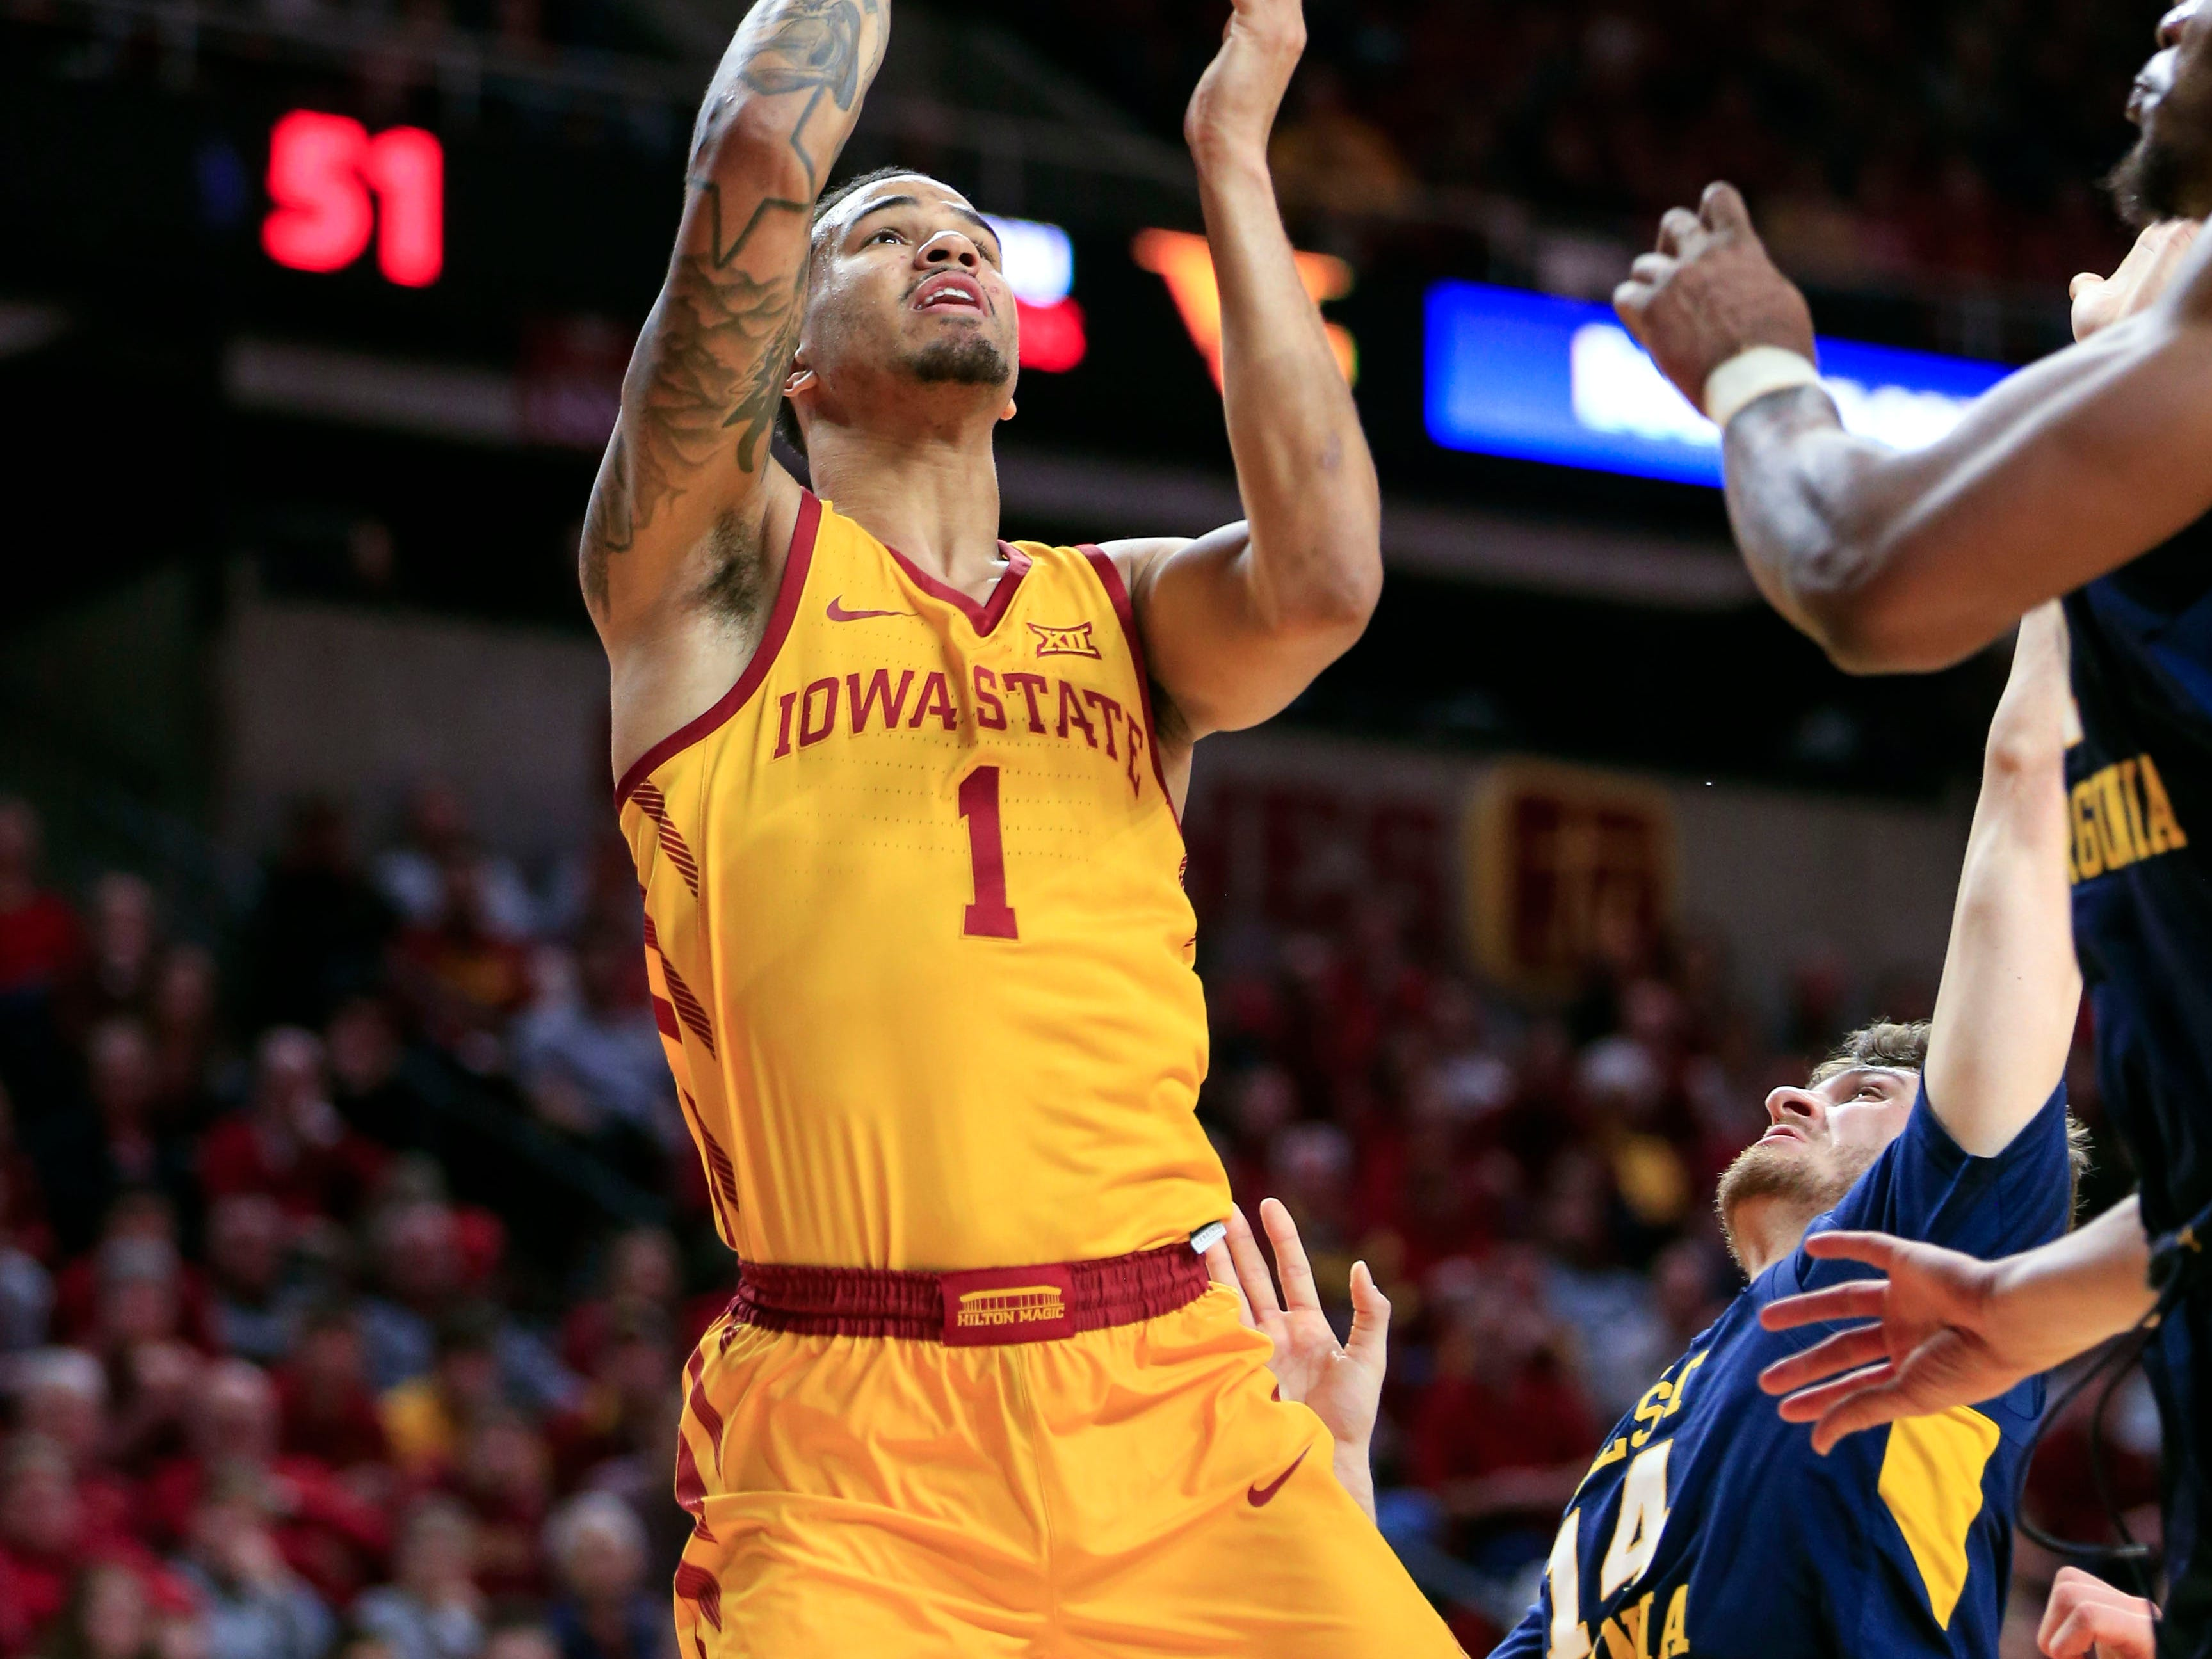 Iowa State's Nick Weiler-Babb puts up a shot during a game against West Virginia at Hilton Coliseum Wednesday, Jan. 30, 2019.